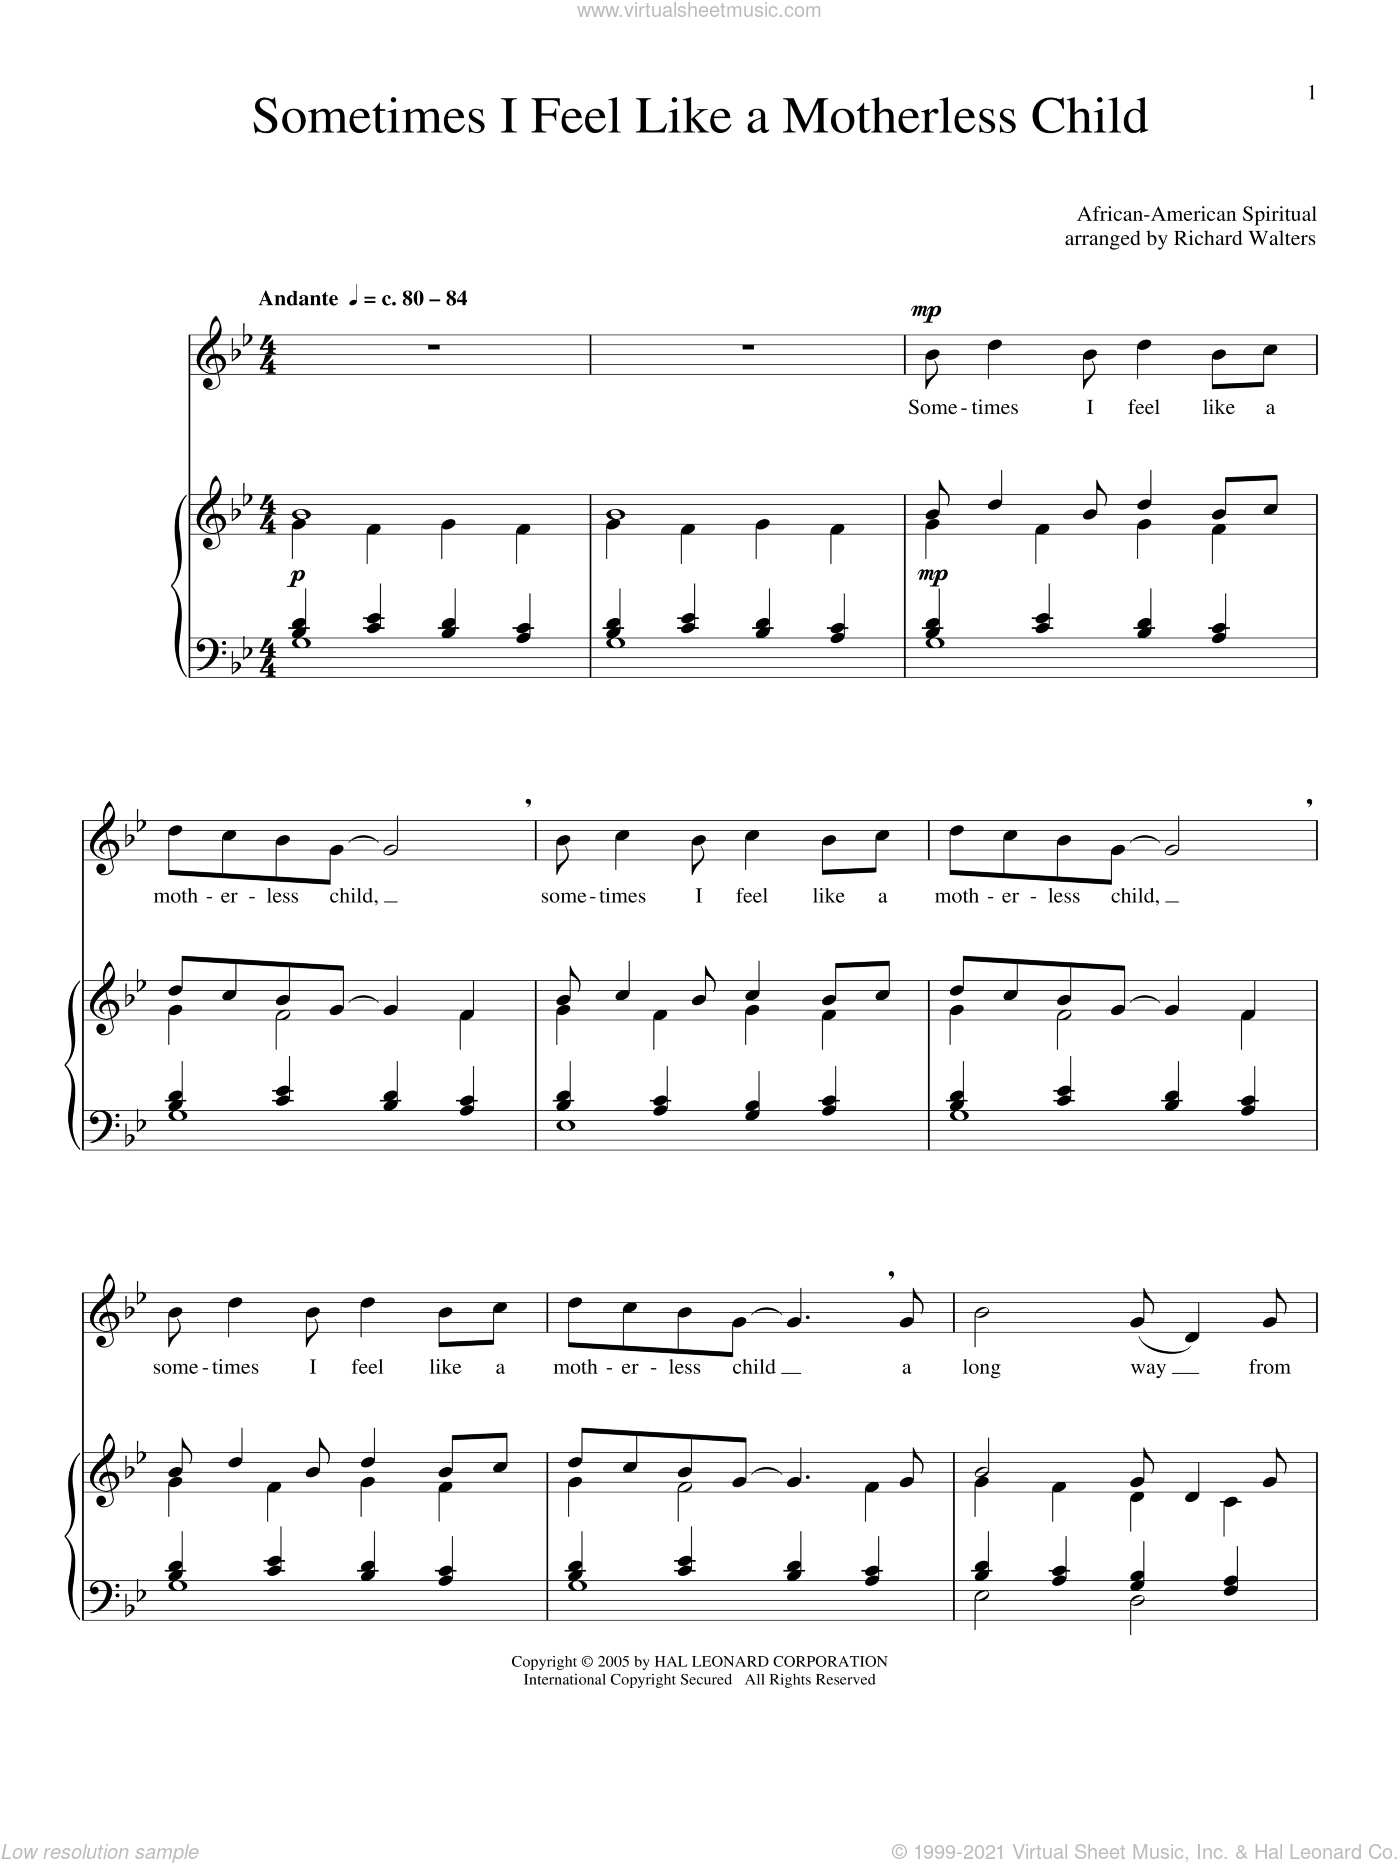 Sometimes I Feel Like A Motherless Child sheet music for voice and piano. Score Image Preview.